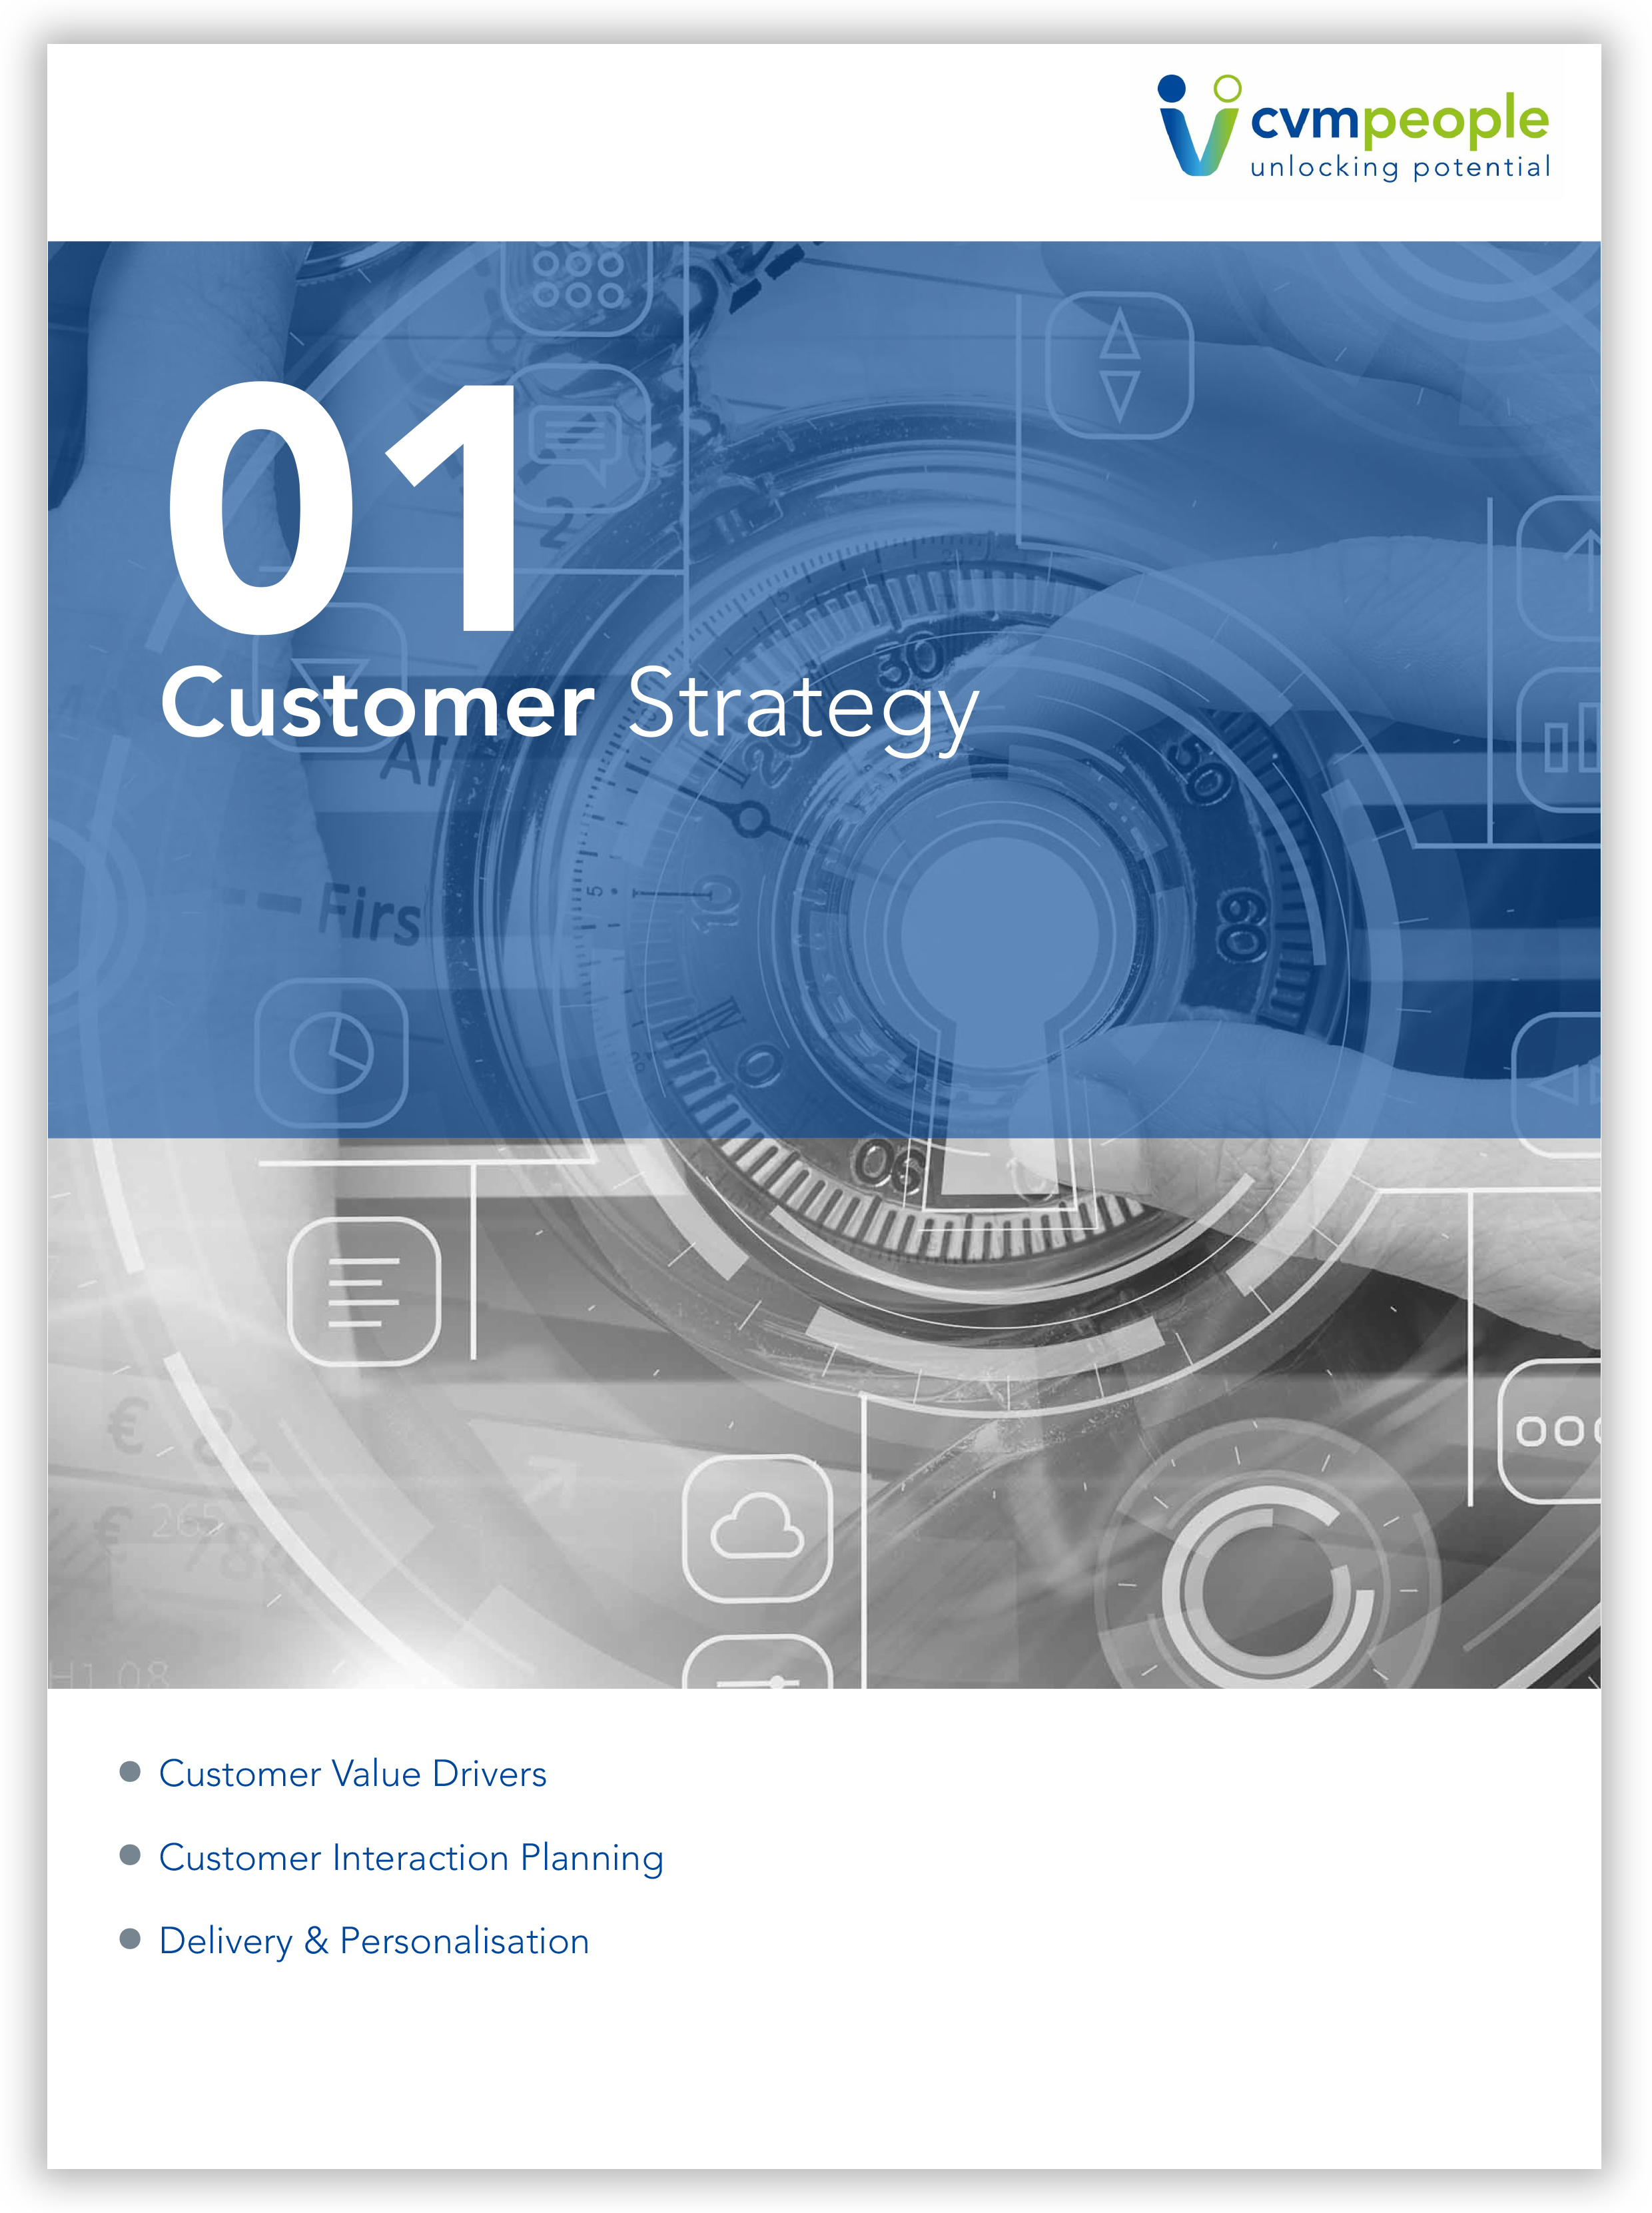 CVM People discuss customer interaction planning, channels and personalisation in building a customer strategy